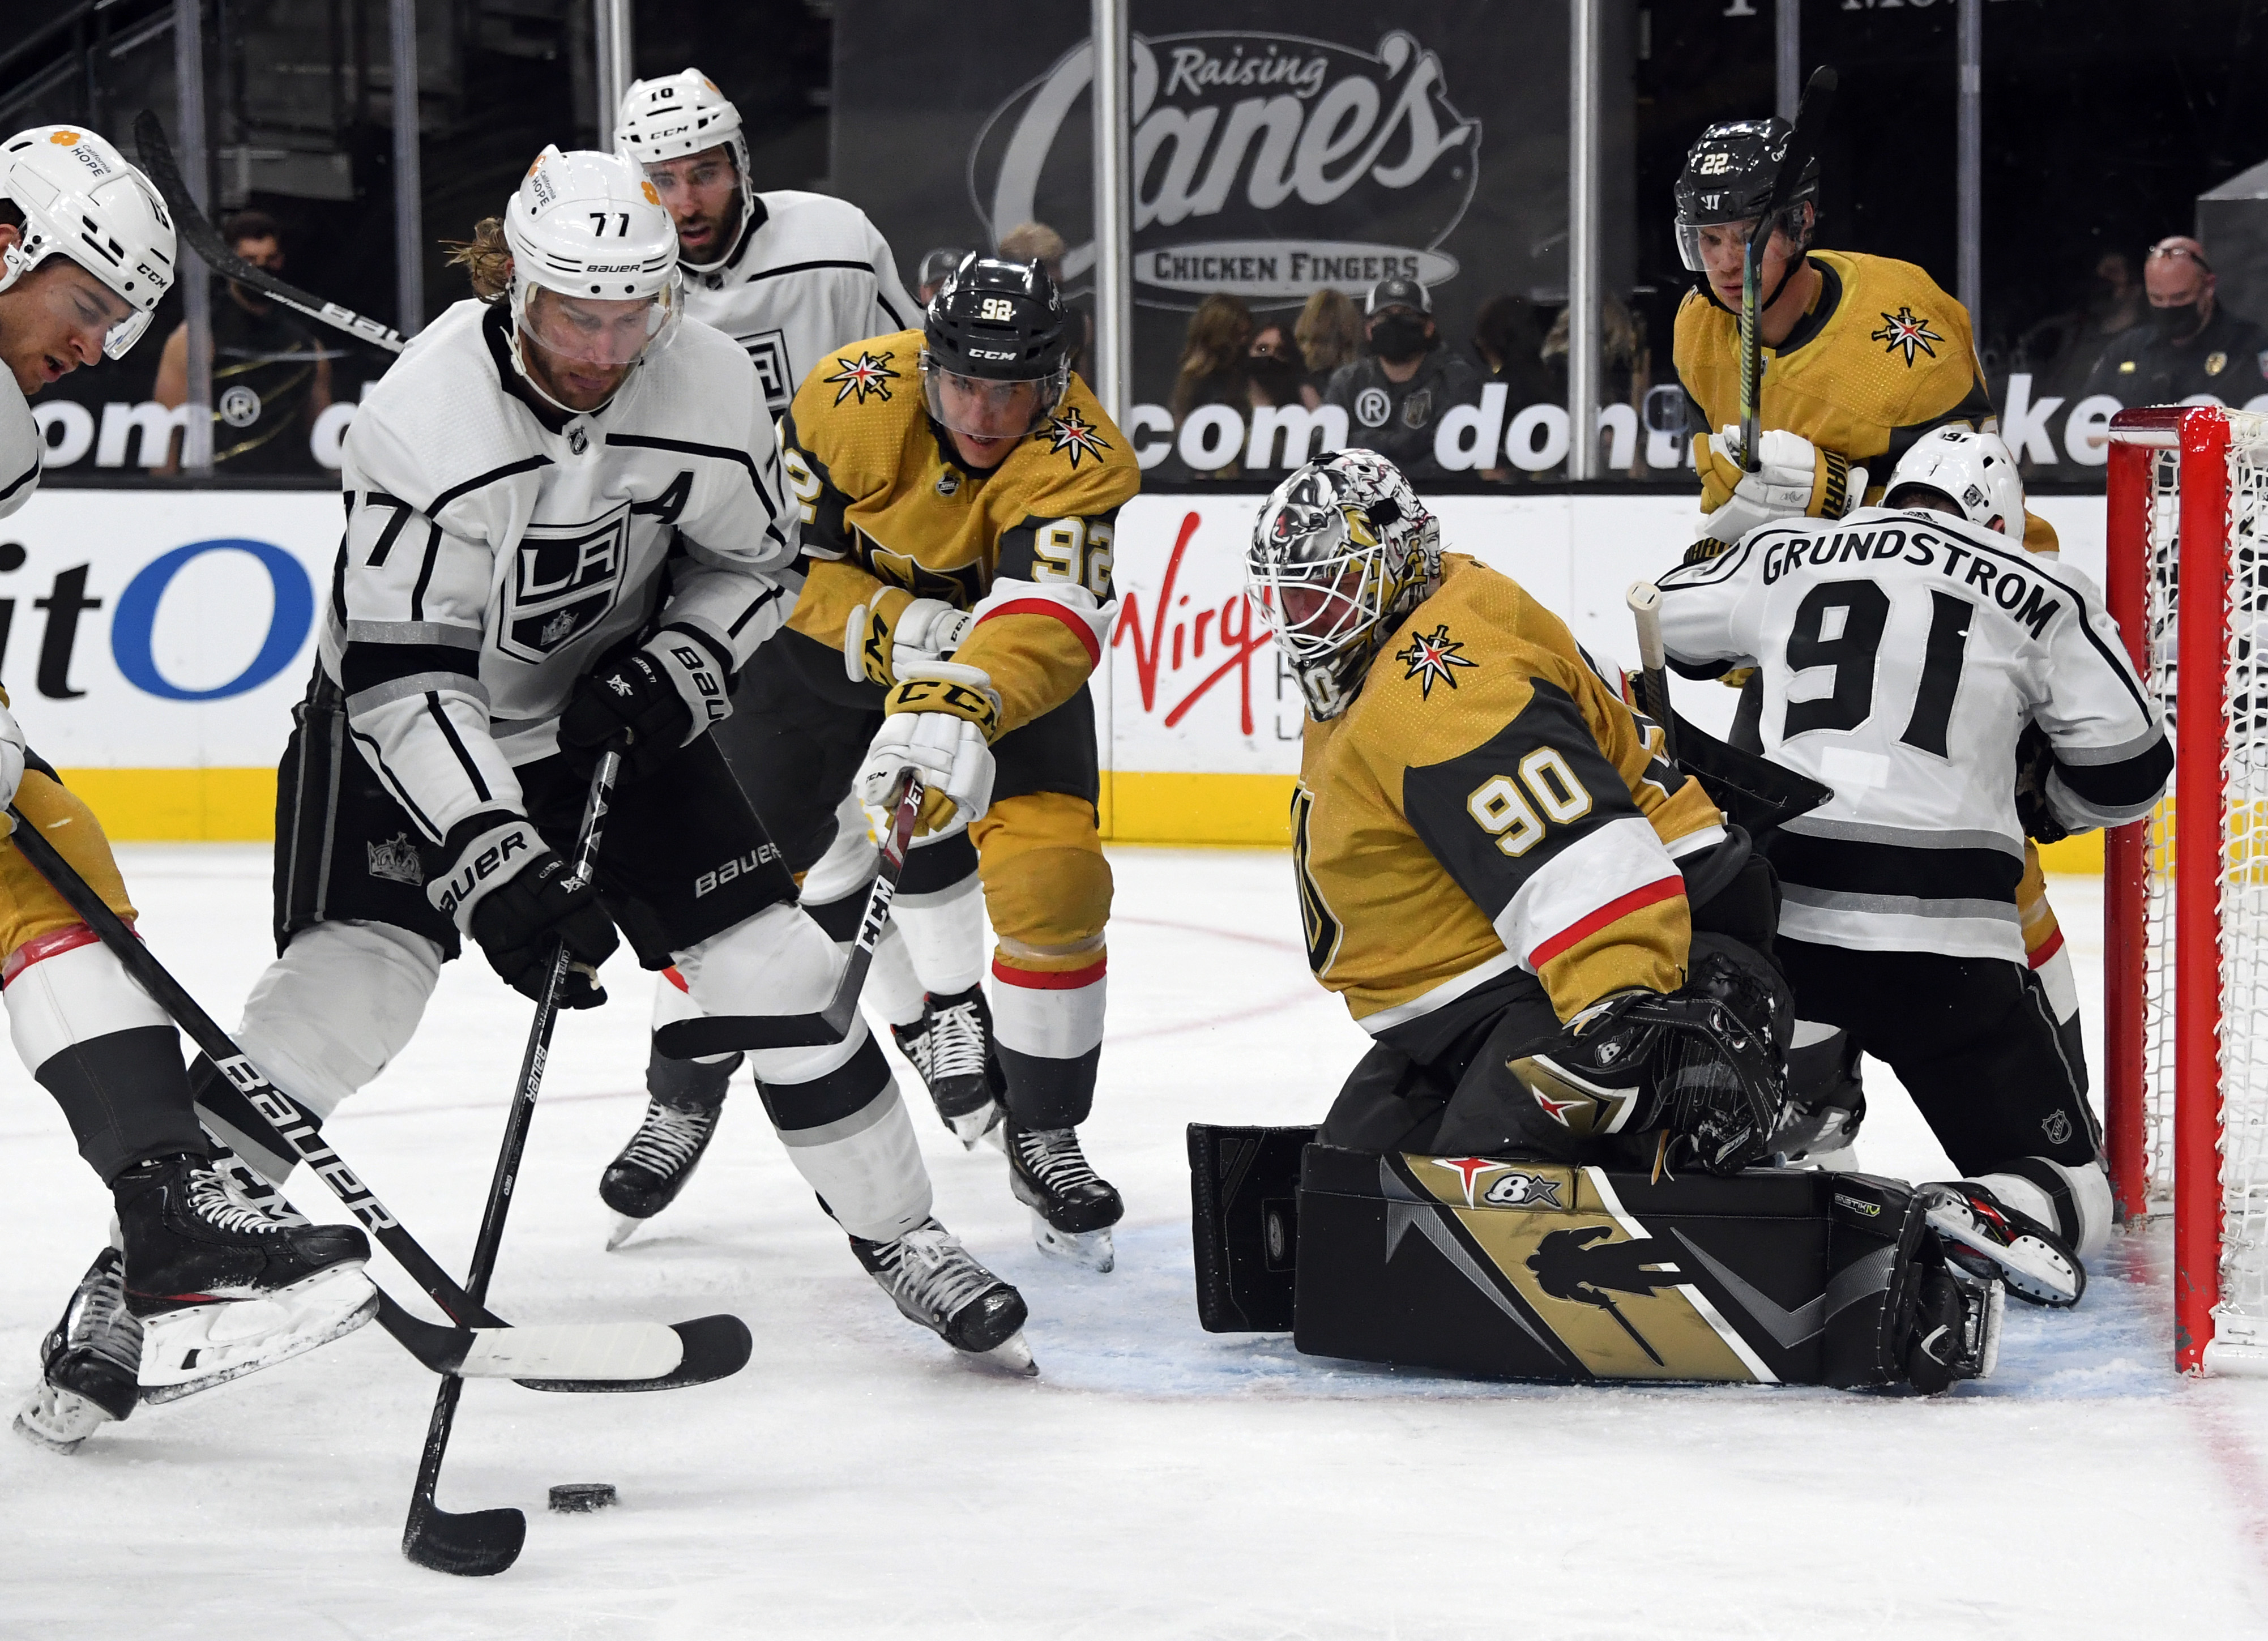 Jeff Carter #77 of the Los Angeles Kings tries to get a shot off against Tomas Nosek #92 and Robin Lehner #90 of the Vegas Golden Knights in the third period of their game at T-Mobile Arena on February 7, 2021 in Las Vegas, Nevada. The Golden Knights defeated the Kings 4-3.